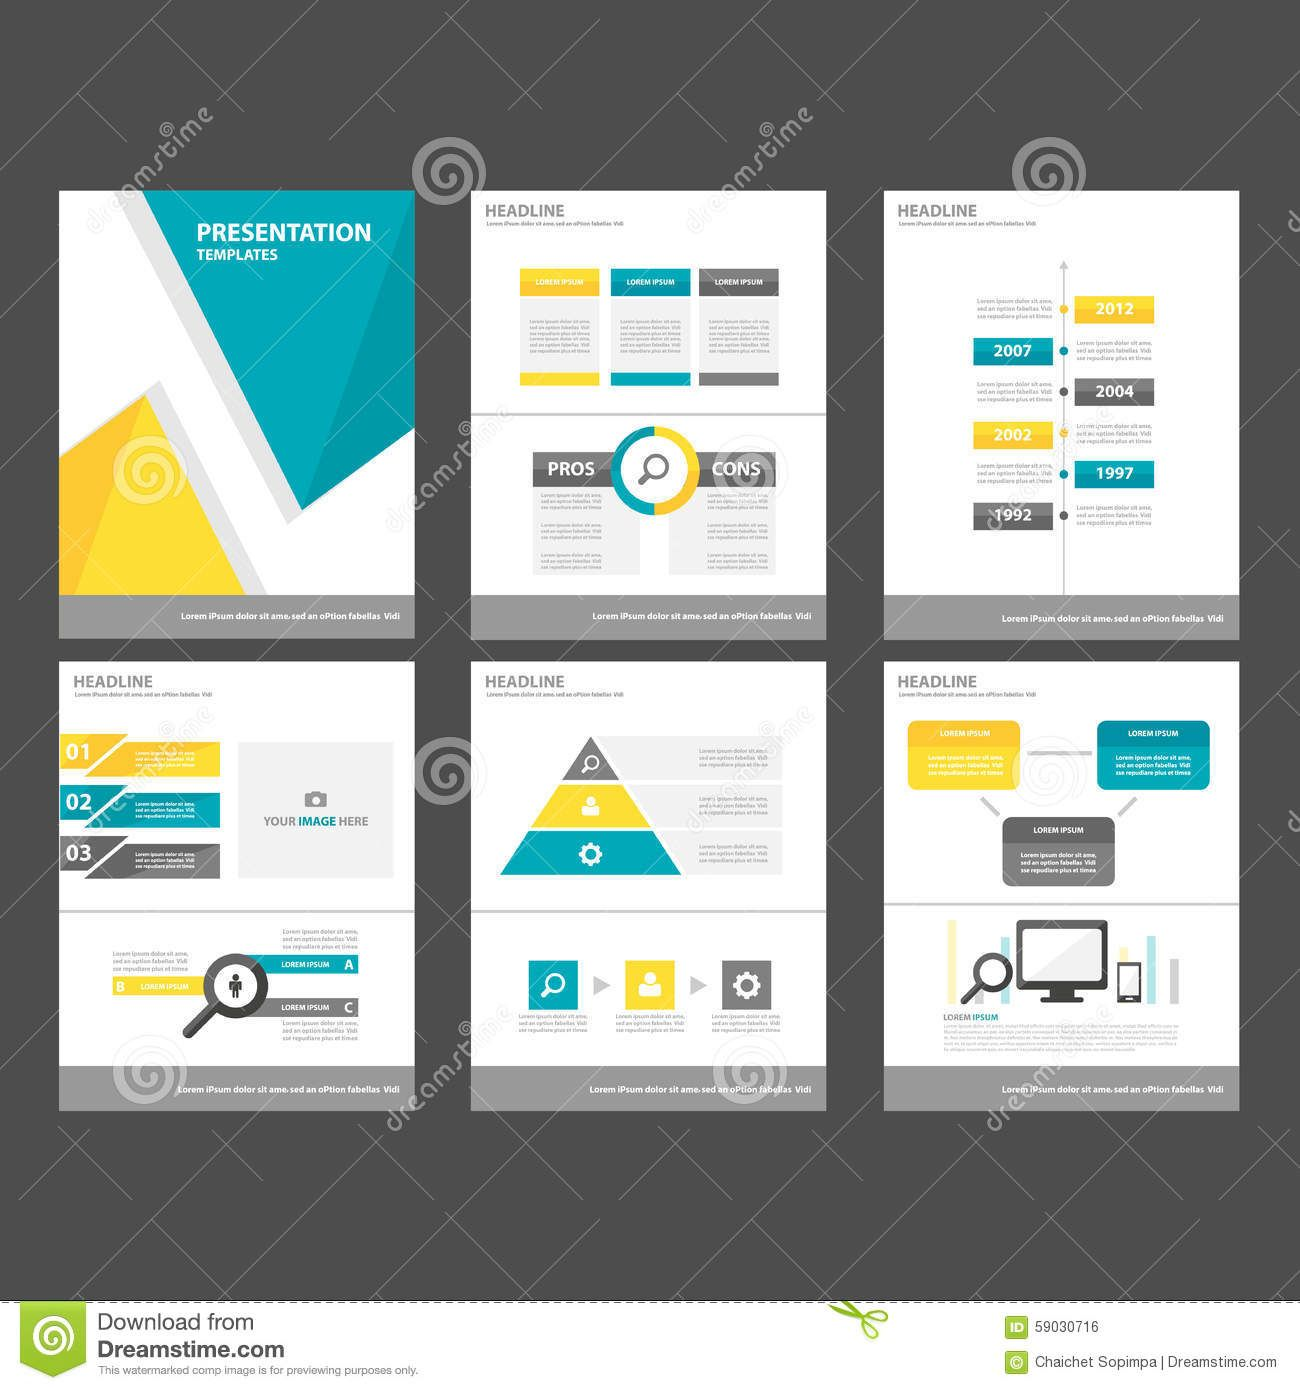 Google Website Templates Blue And Yellow Website  Google Search  Cuemath  Color Scheme